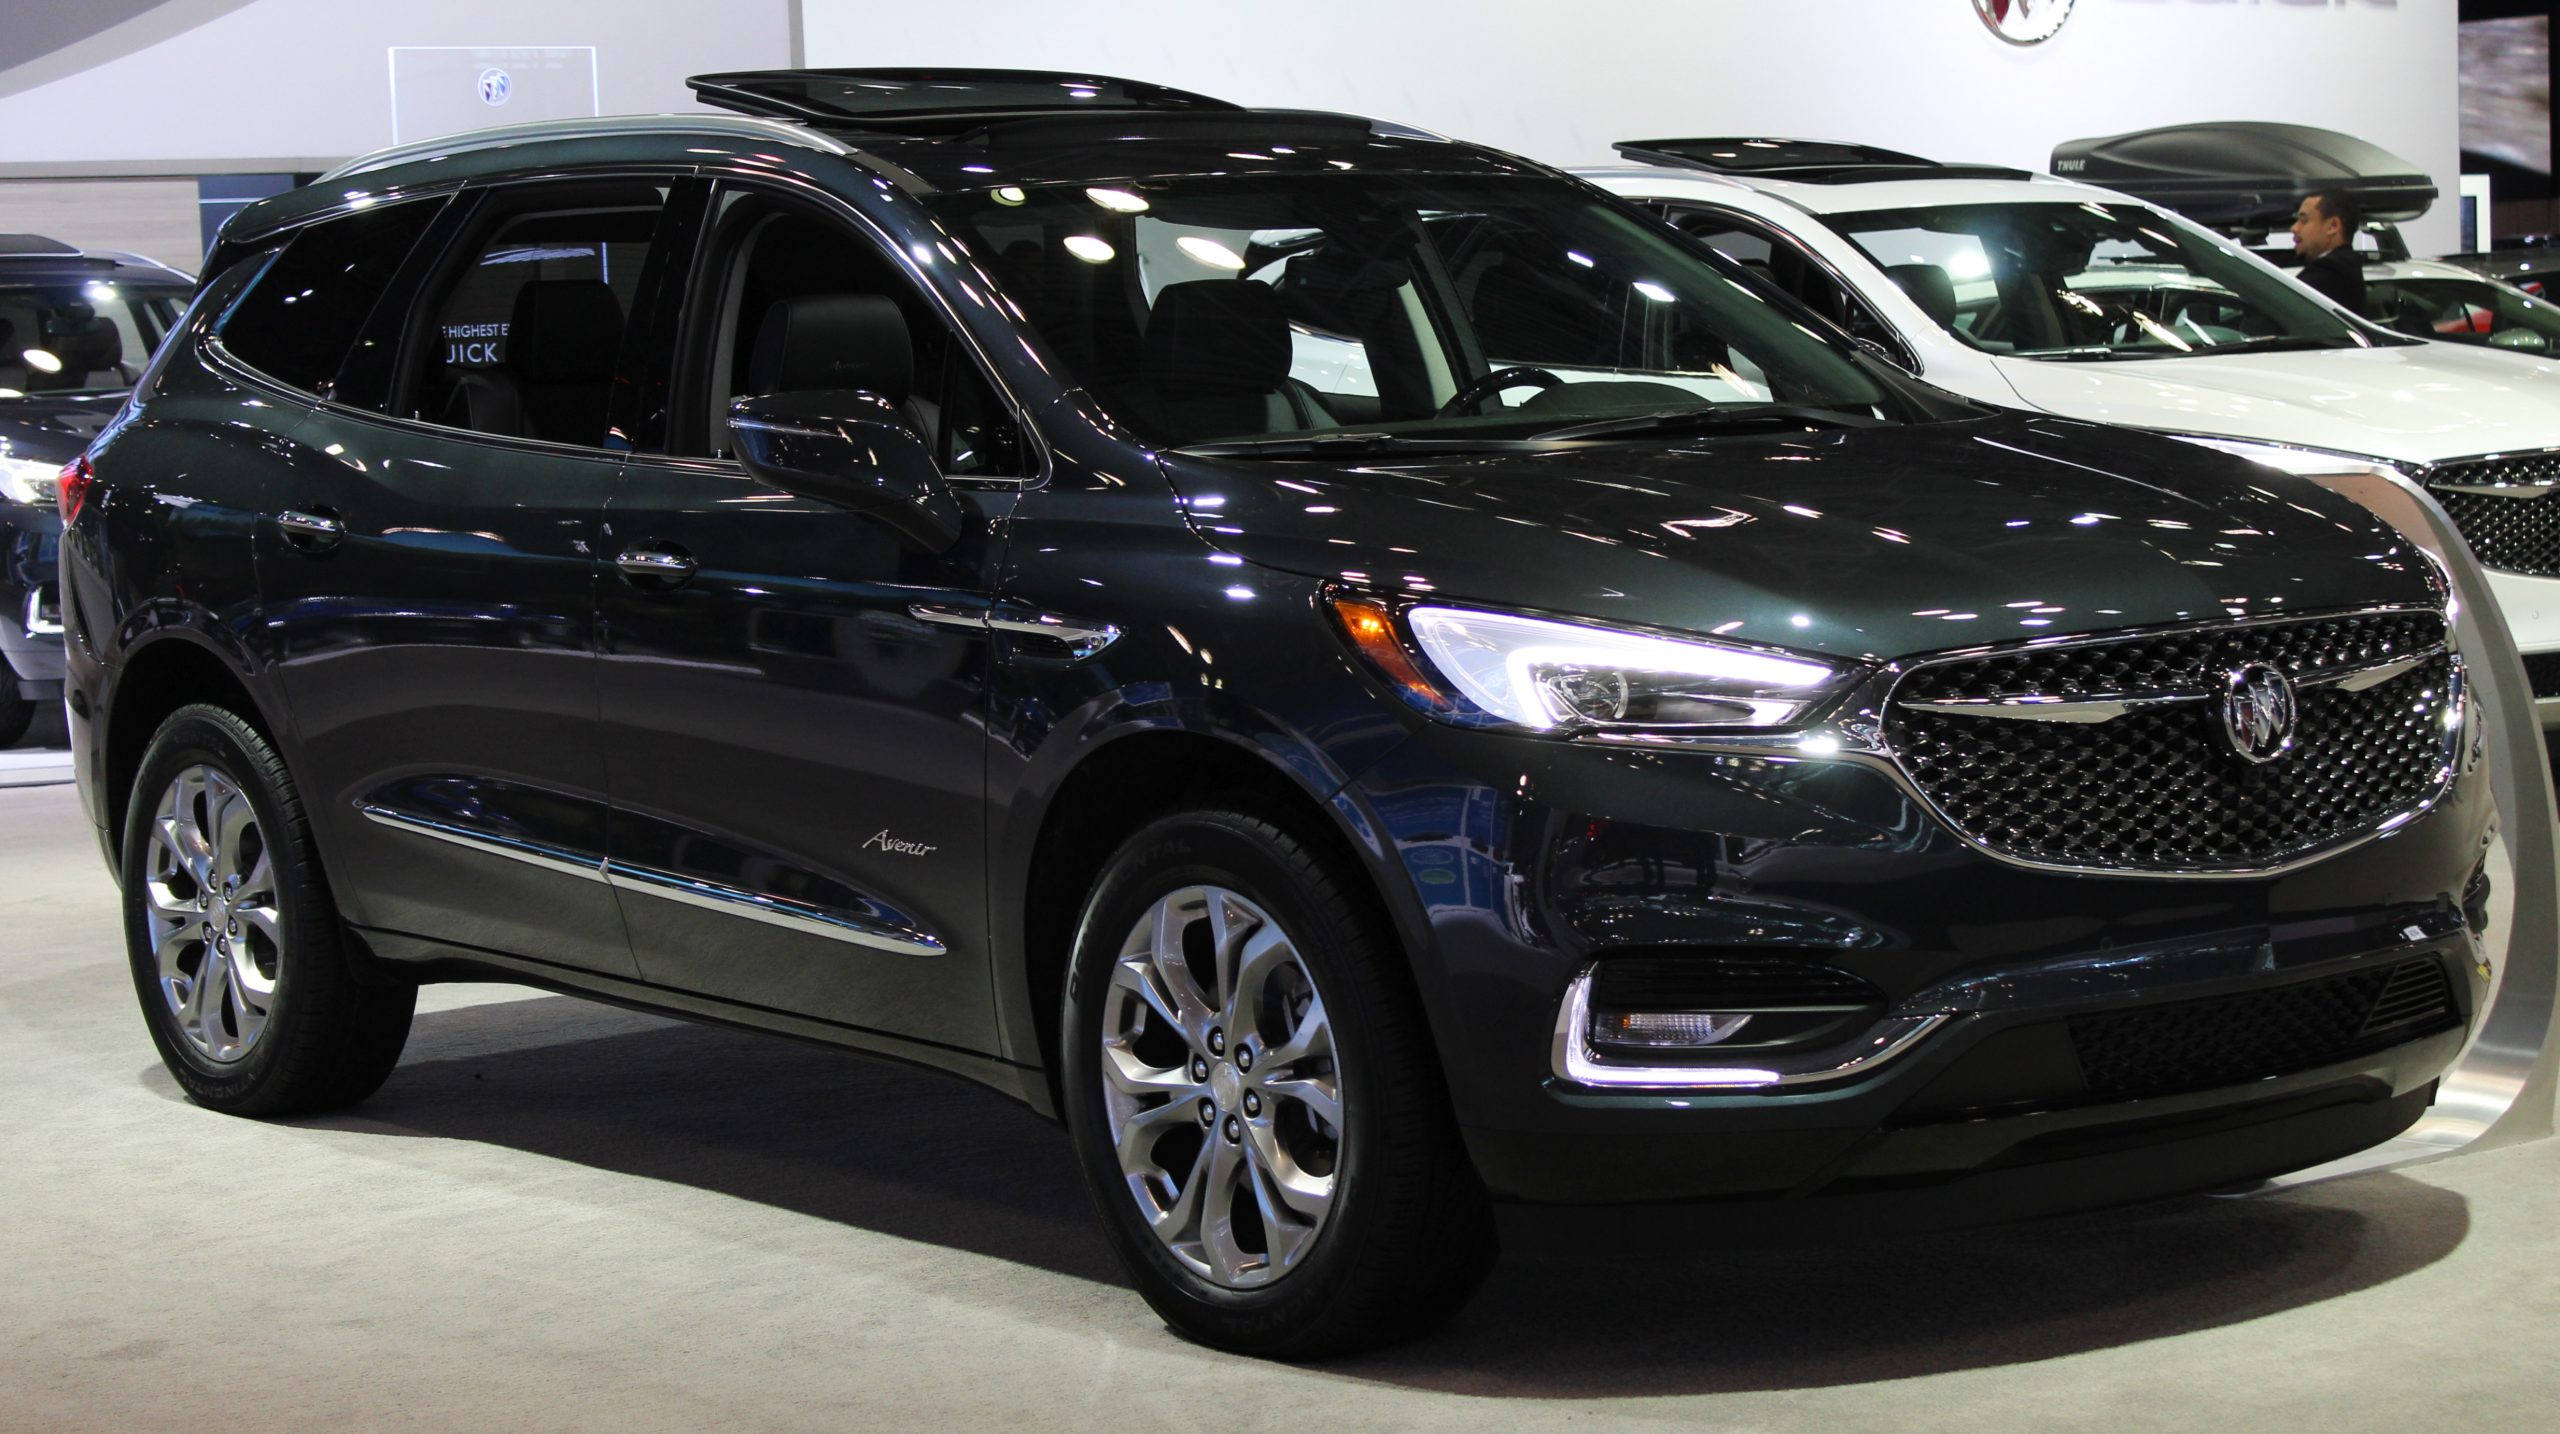 Buick Enclave - Wikipedia New 2022 Buick Enclave Fuel Economy, Fog Lights, Gas Mileage